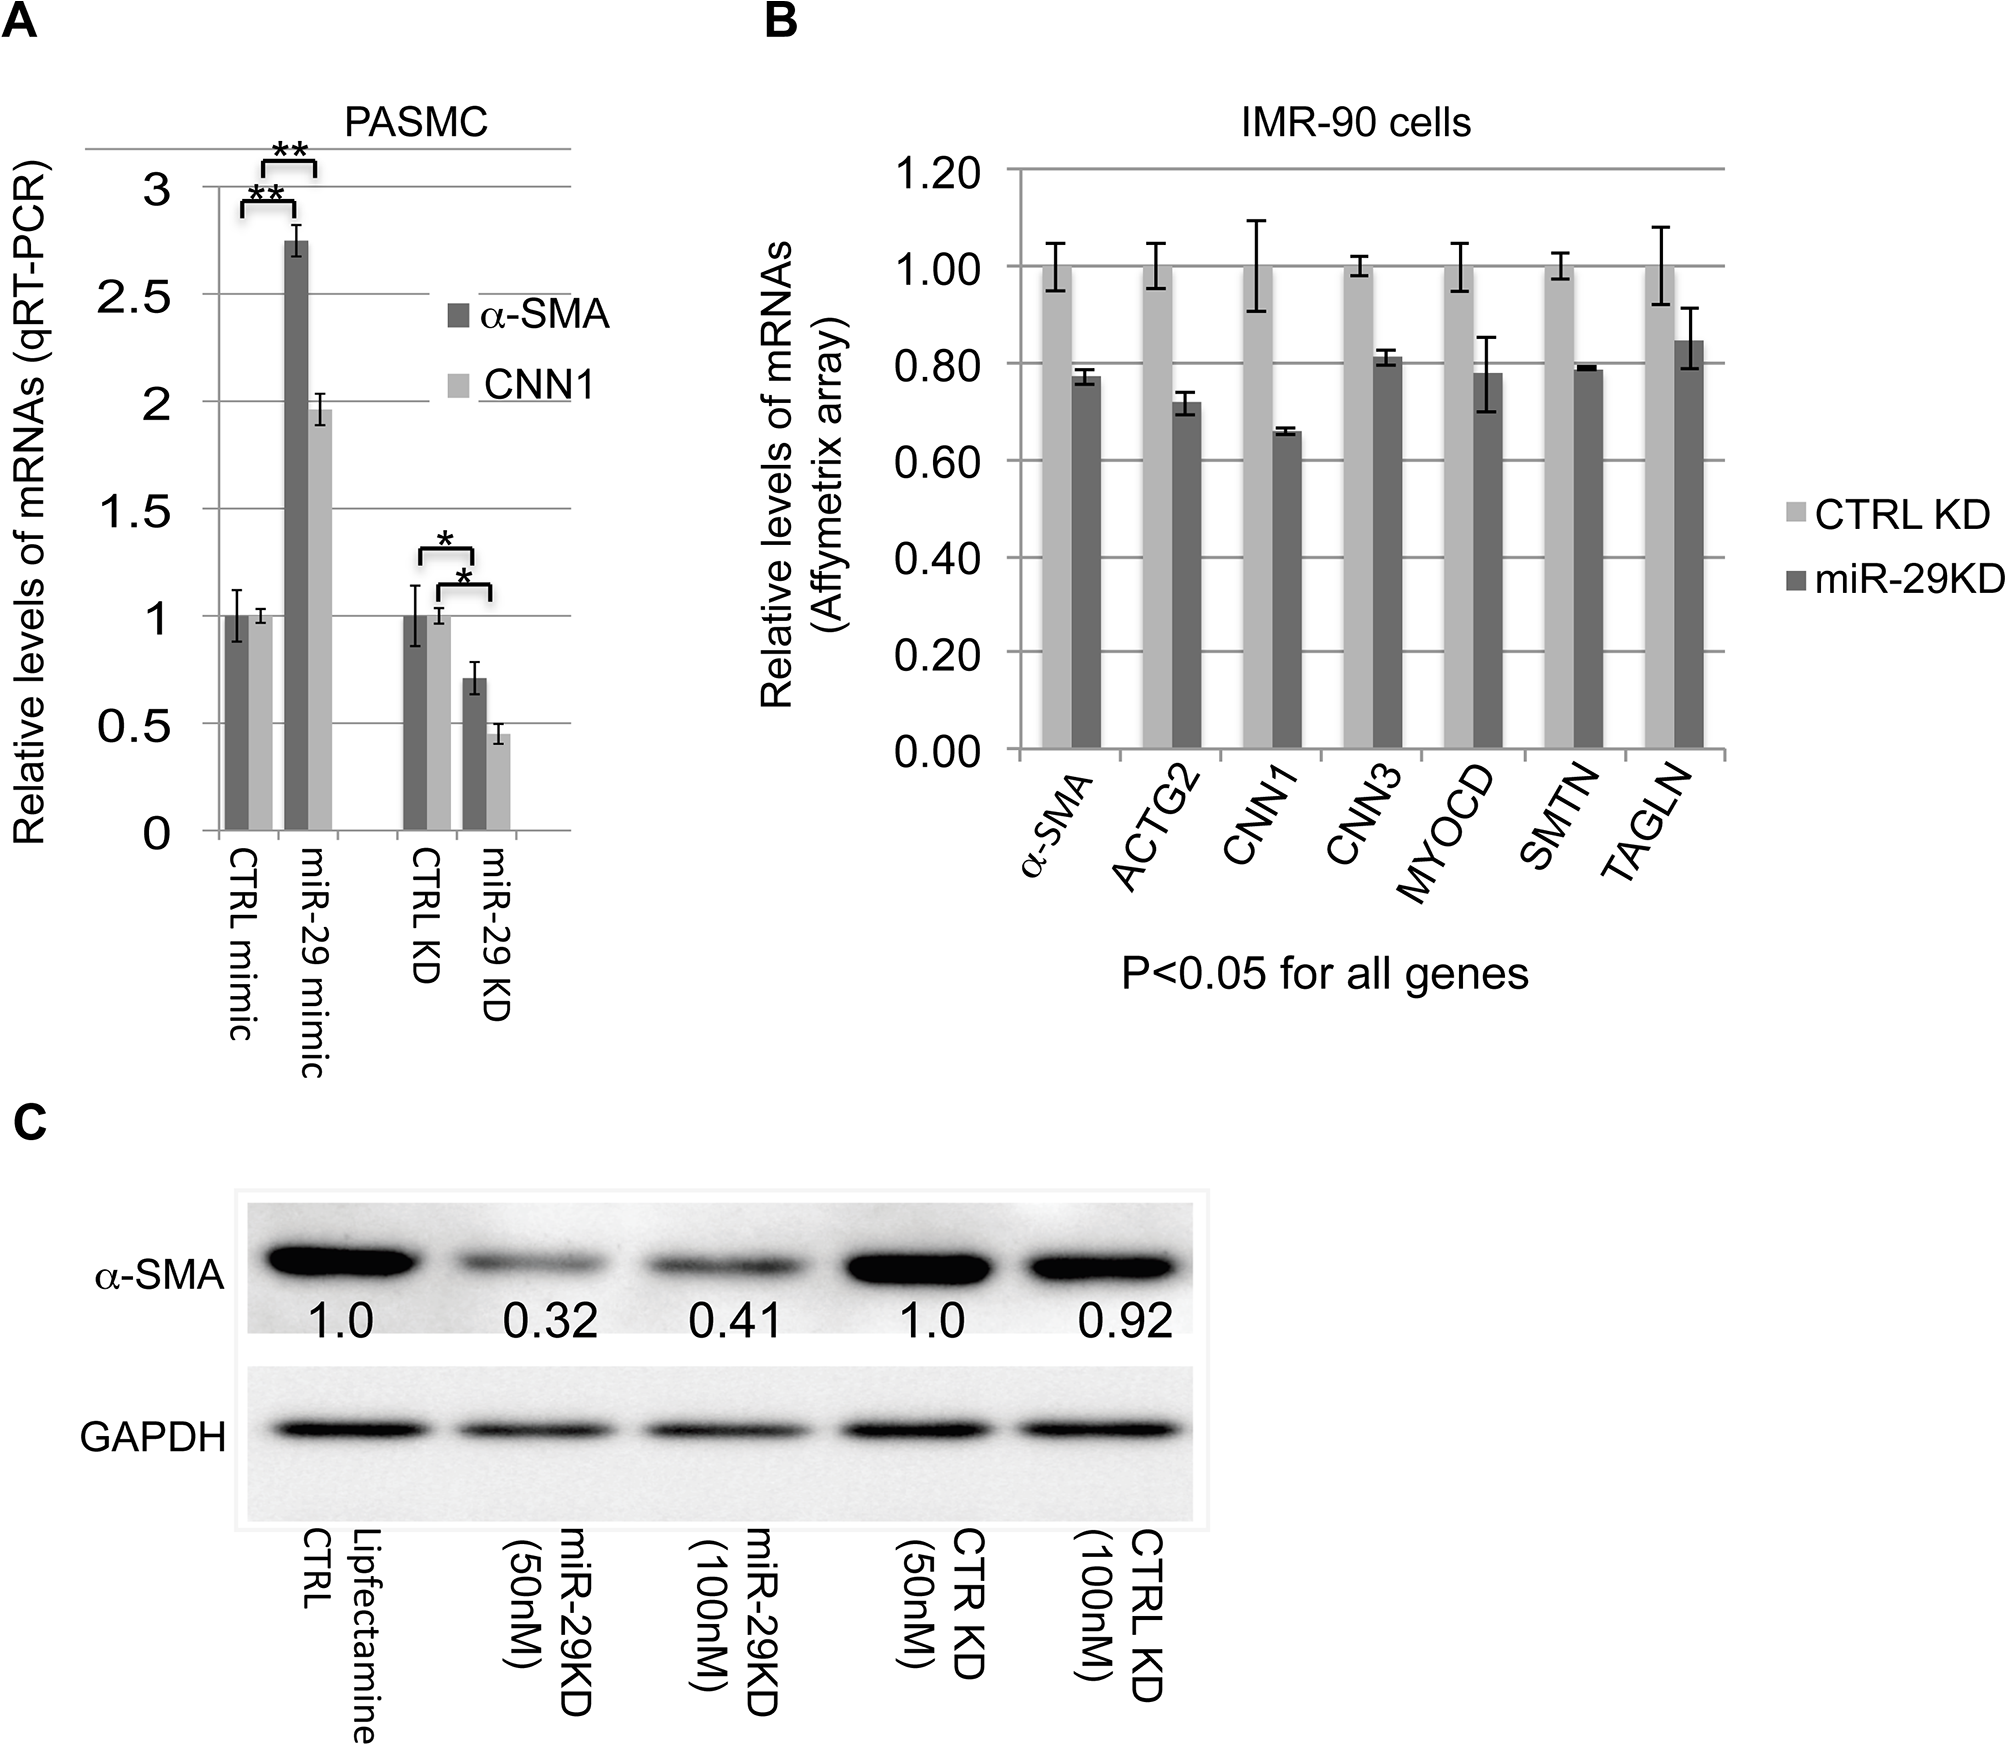 miR-29 promotes the expression of contractile SMC markers.